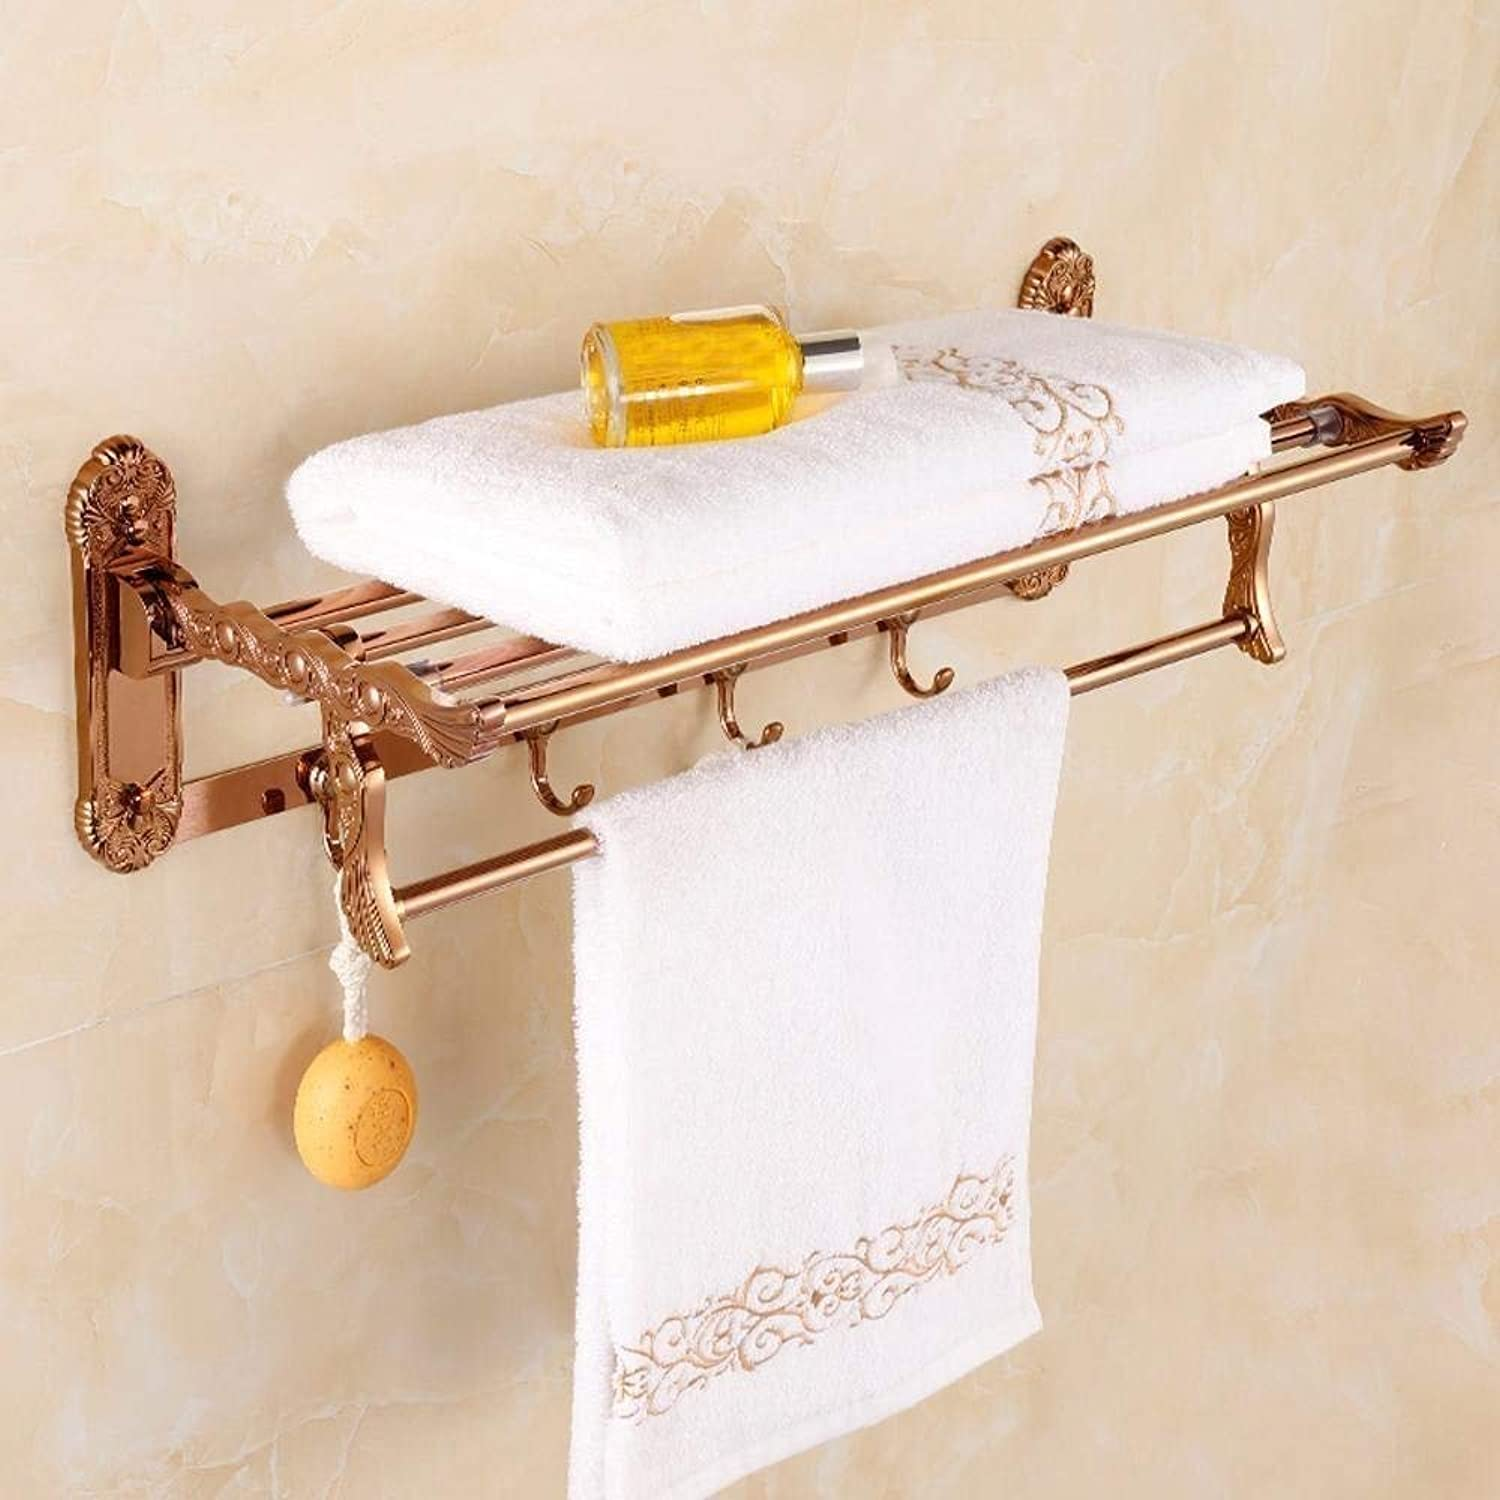 In Pink gold, Dry-Towels Tablets Old Bathroom